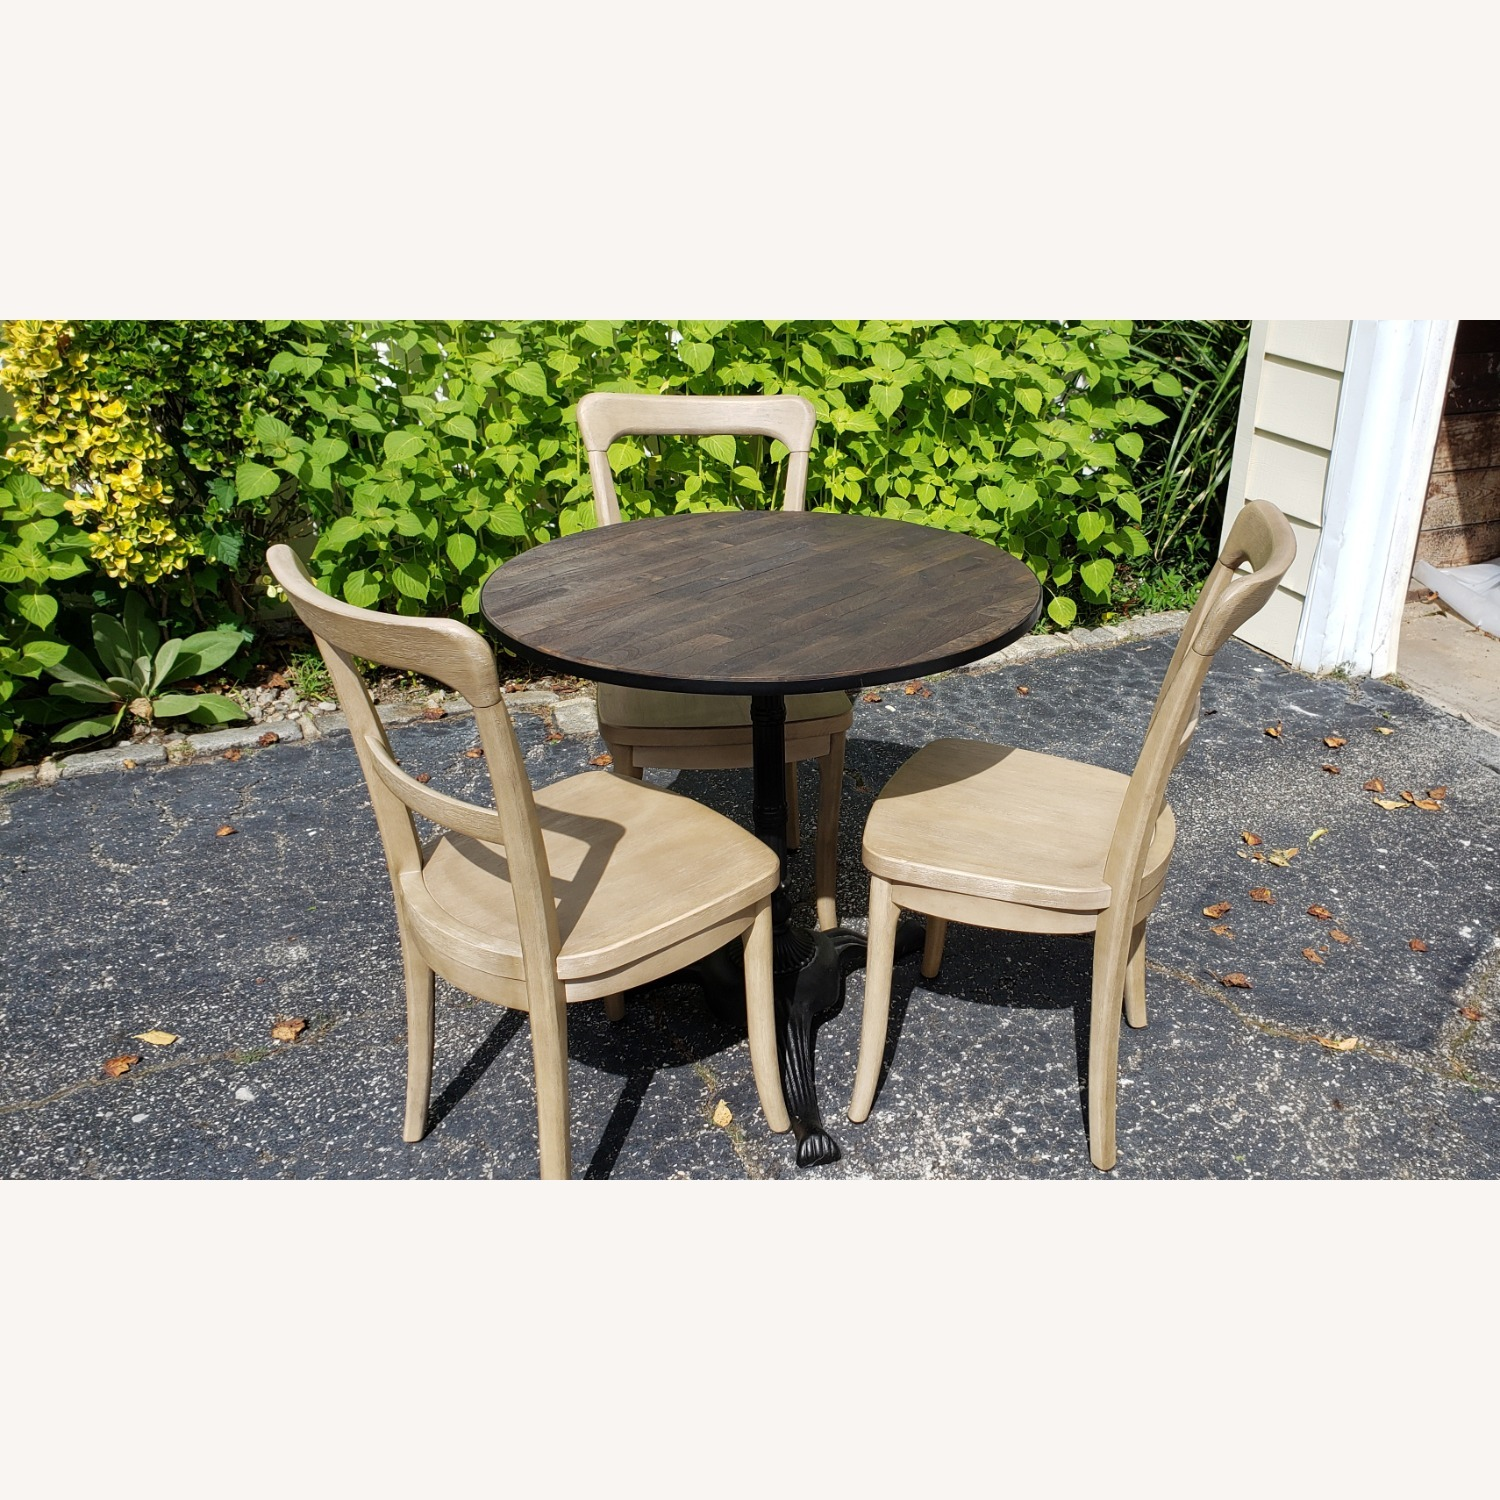 Pottery Barn Rae Bistro Dining Table Set with 3 Chairs - image-3